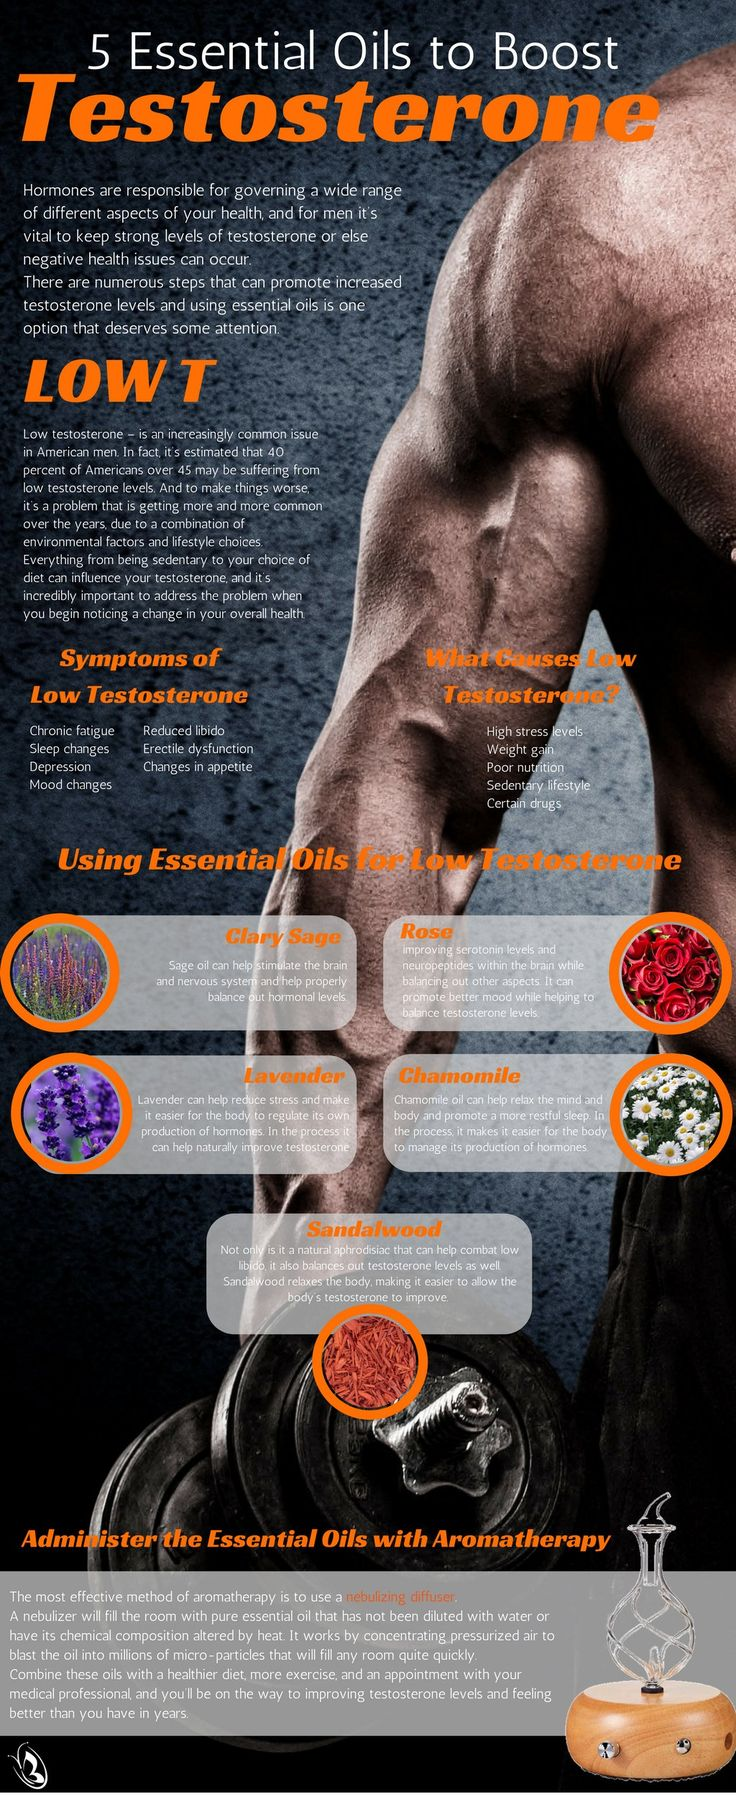 5 Essential Oils to Help Boost Testosterone Infographic #OrganicAromas  Essential oils are quickly becoming one of the most respected natural remedies available, in large part due to the effectiveness they seem to provide. In the case of low testosterone, there are several different options that are worth looking at for the impact they can have on your testosterone levels.